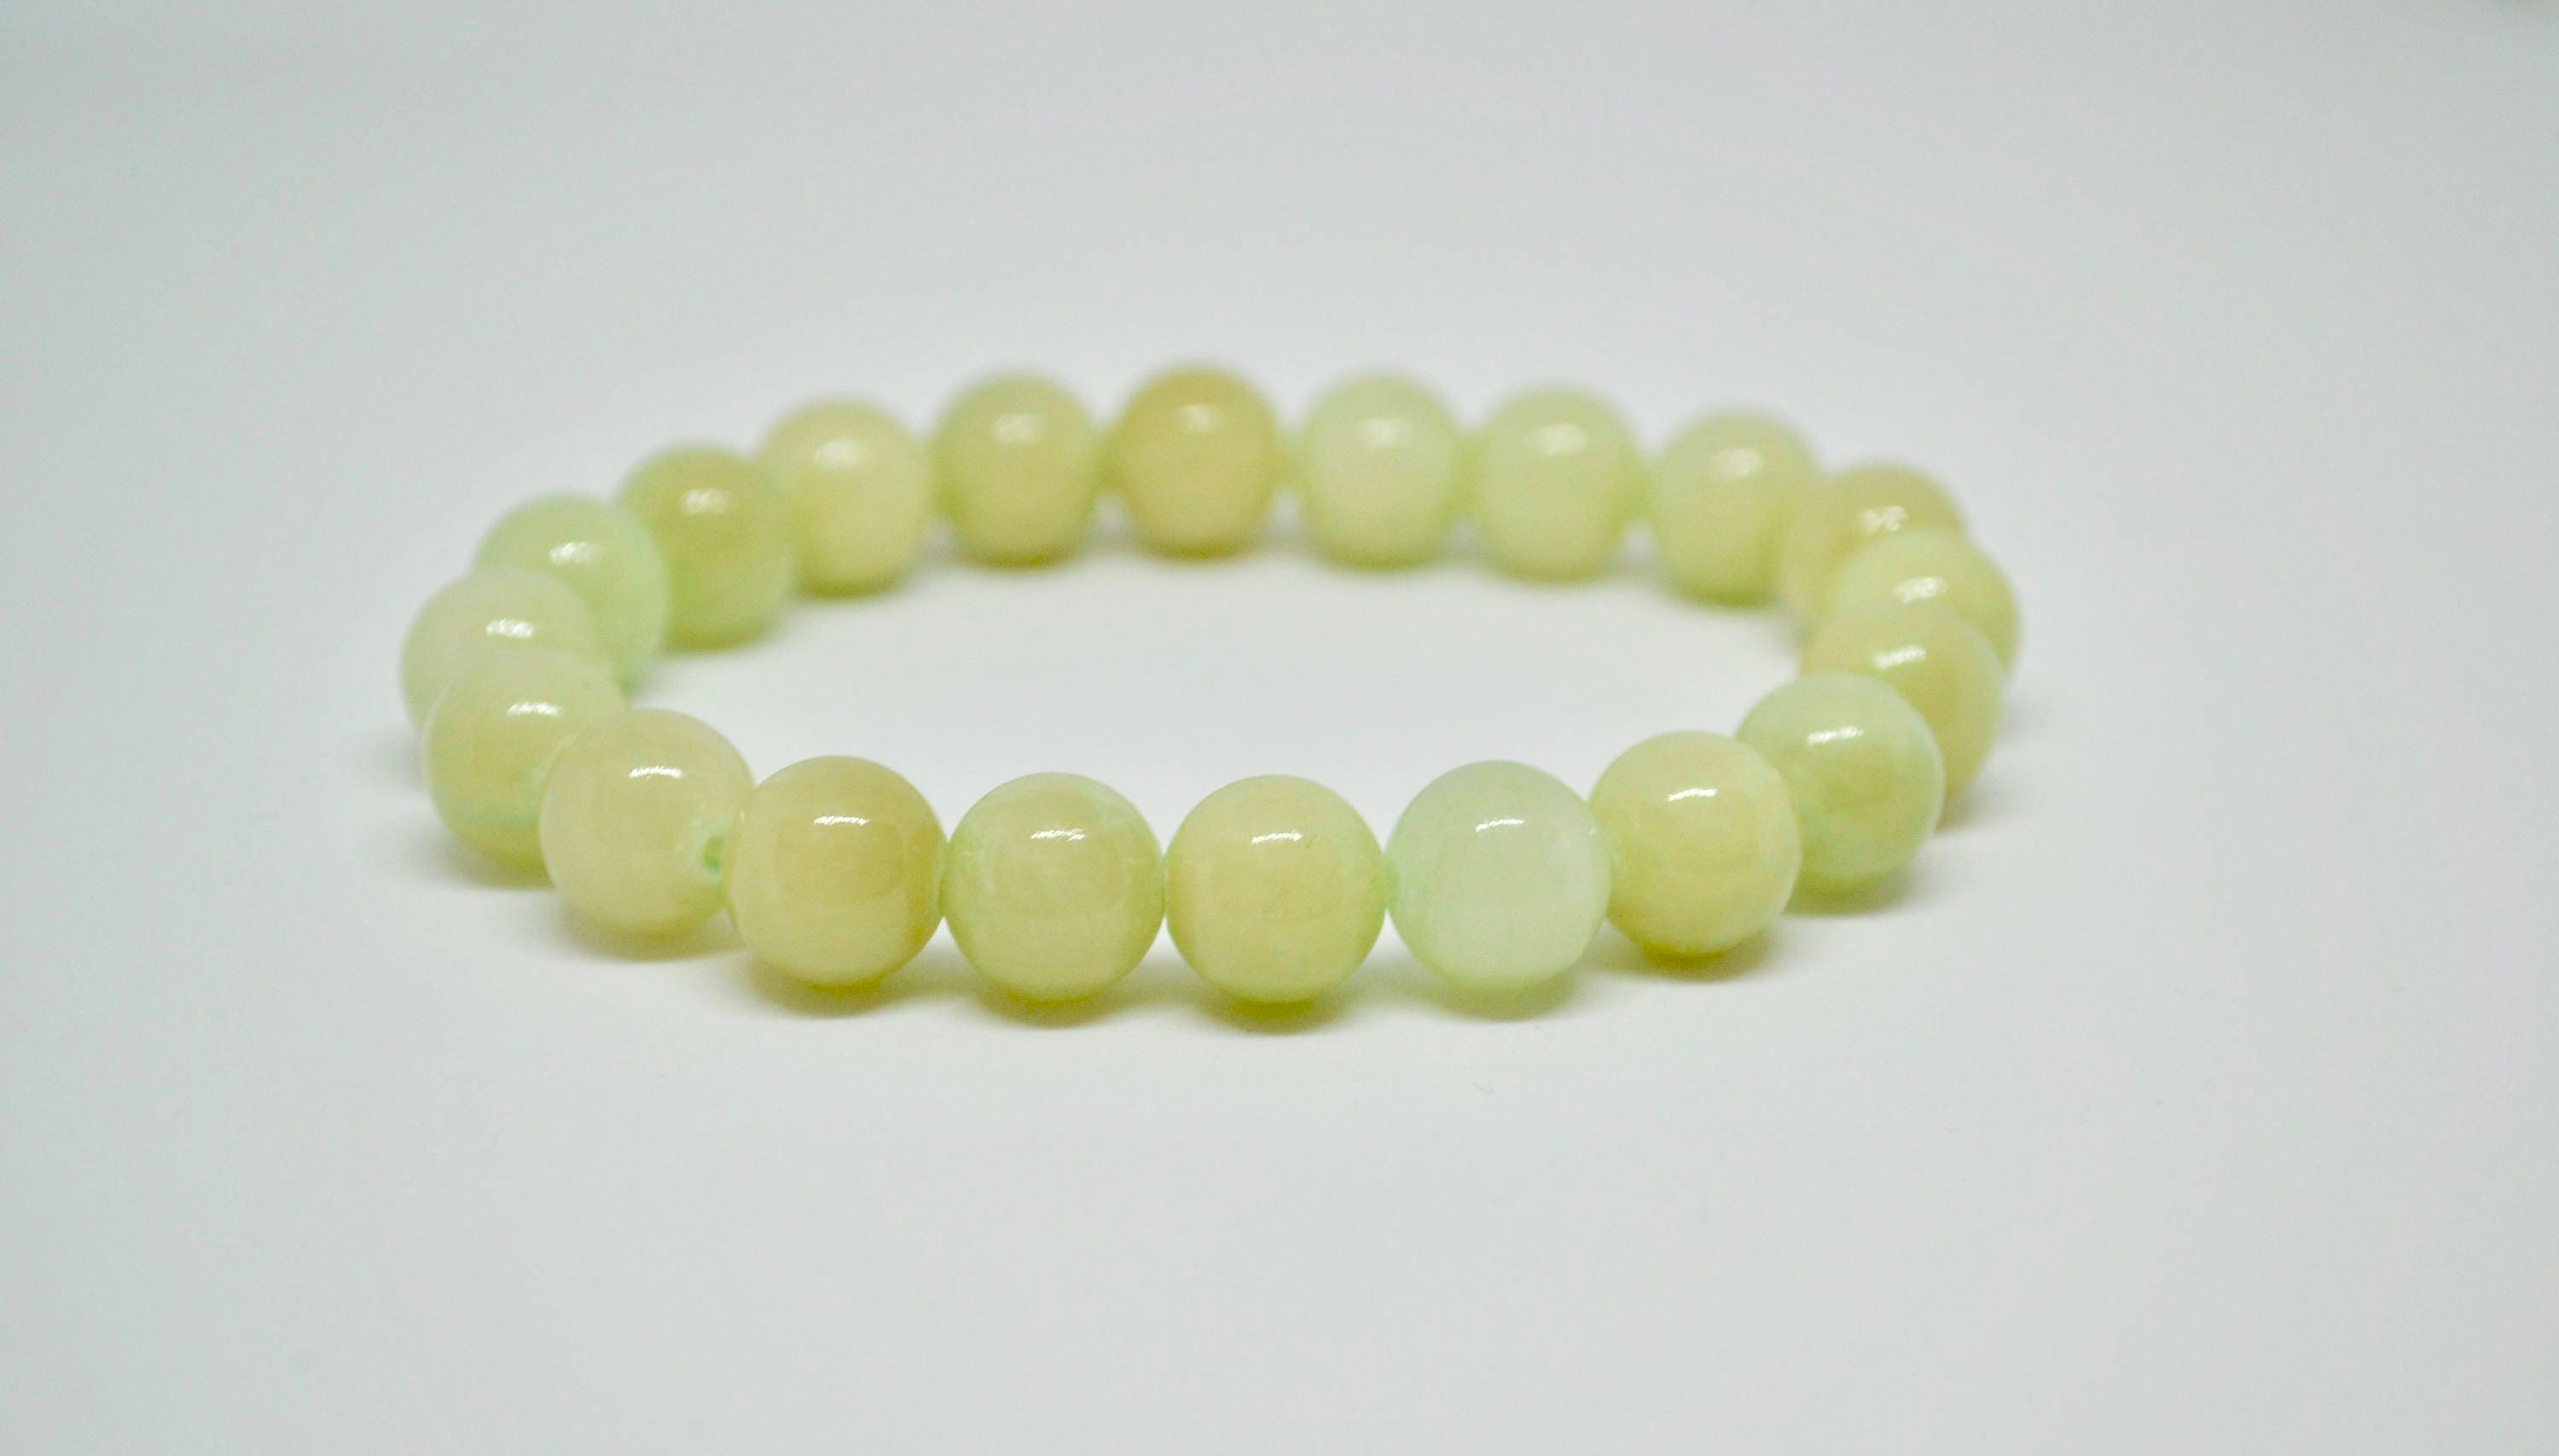 jade chip nugget gemstone listing new healing beads xl fullxfull light crystal green il